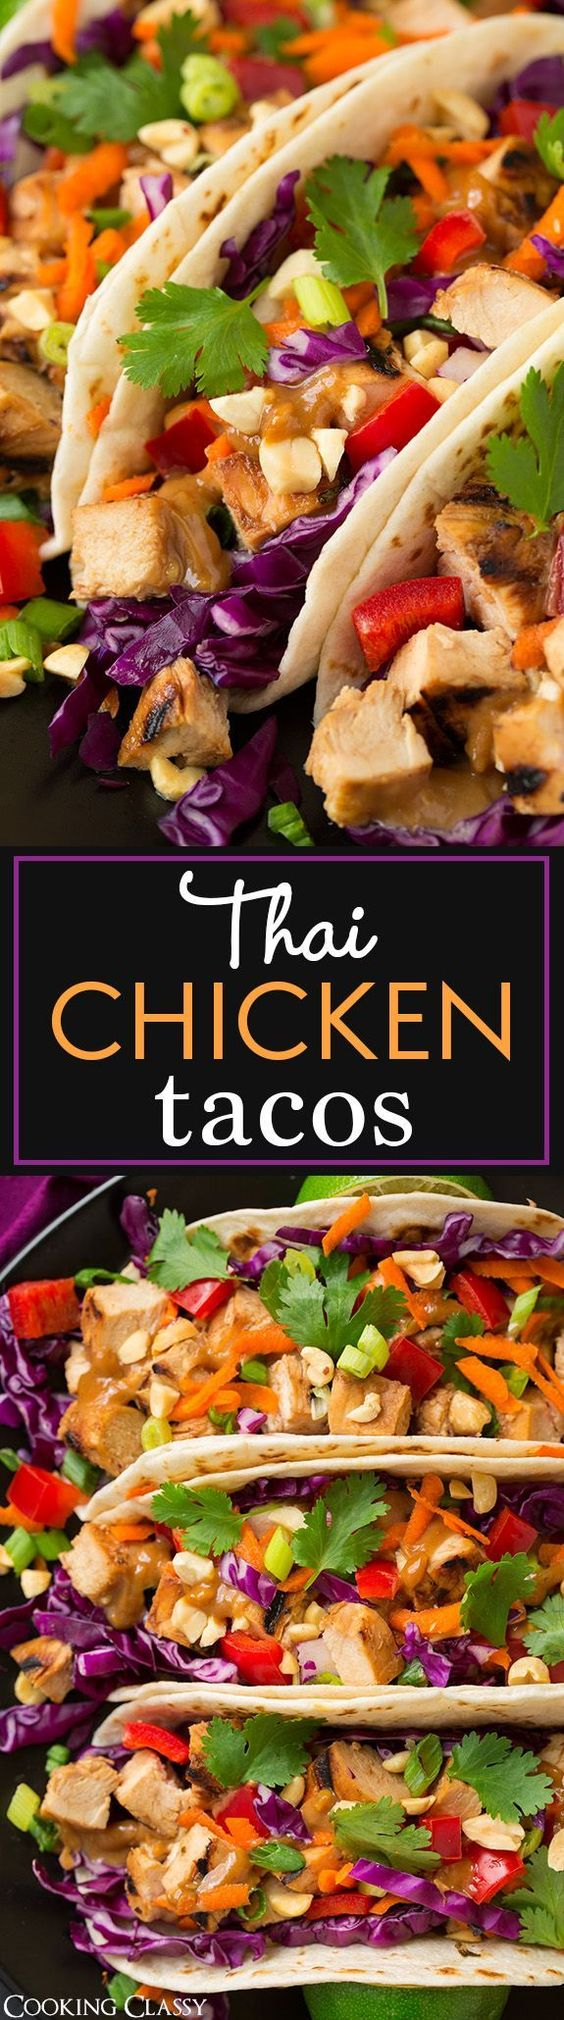 Thai Chicken Tacos with Peanut Sauce - these are unbelievably good ...